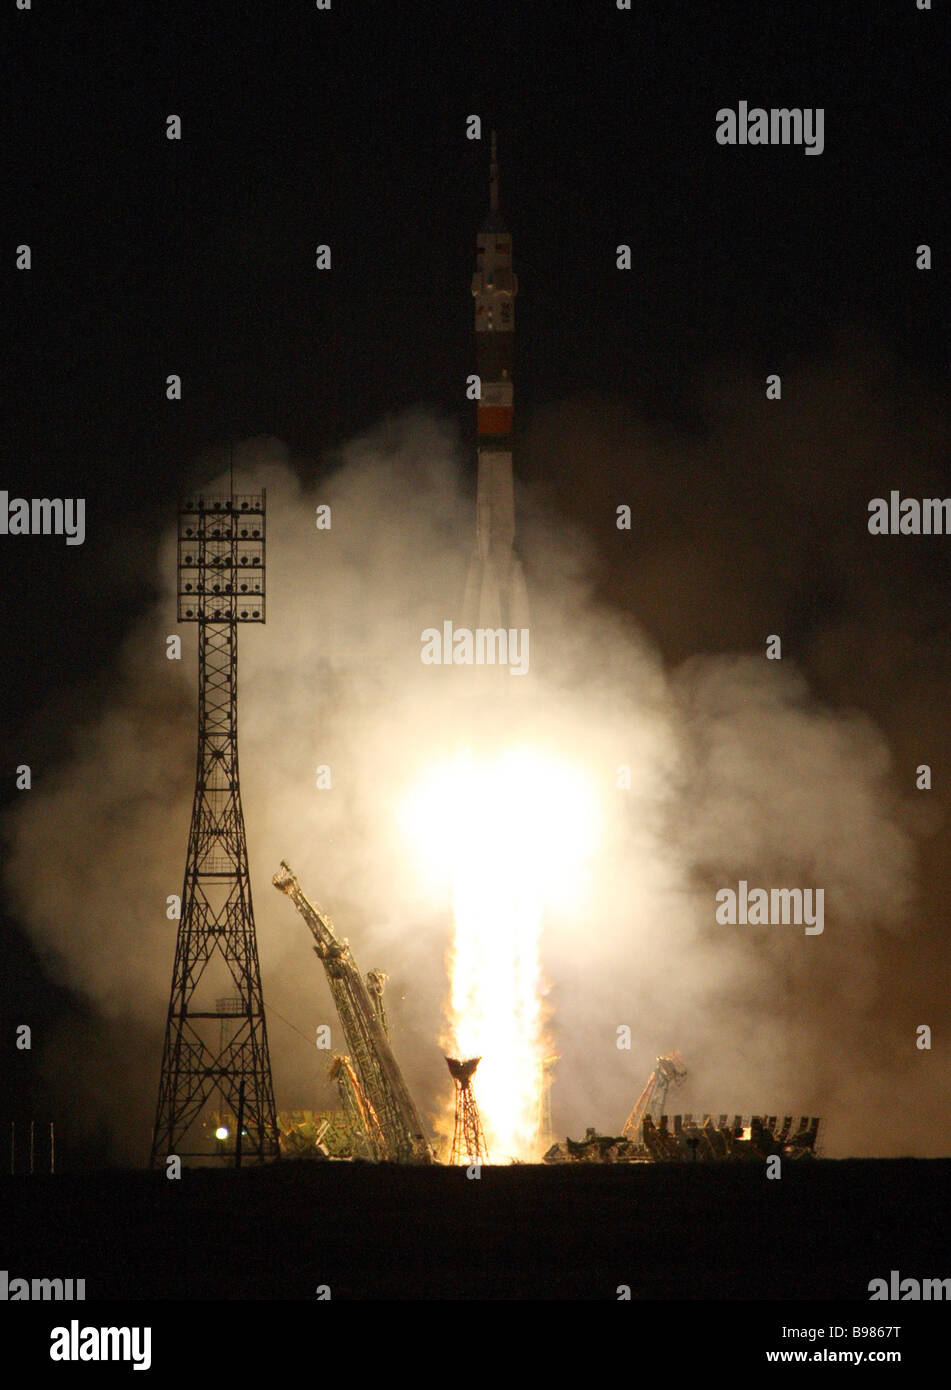 The launch of the Soyuz TMA 11 rocket with the crew of the 16th expedition to the International Space Station - Stock Image